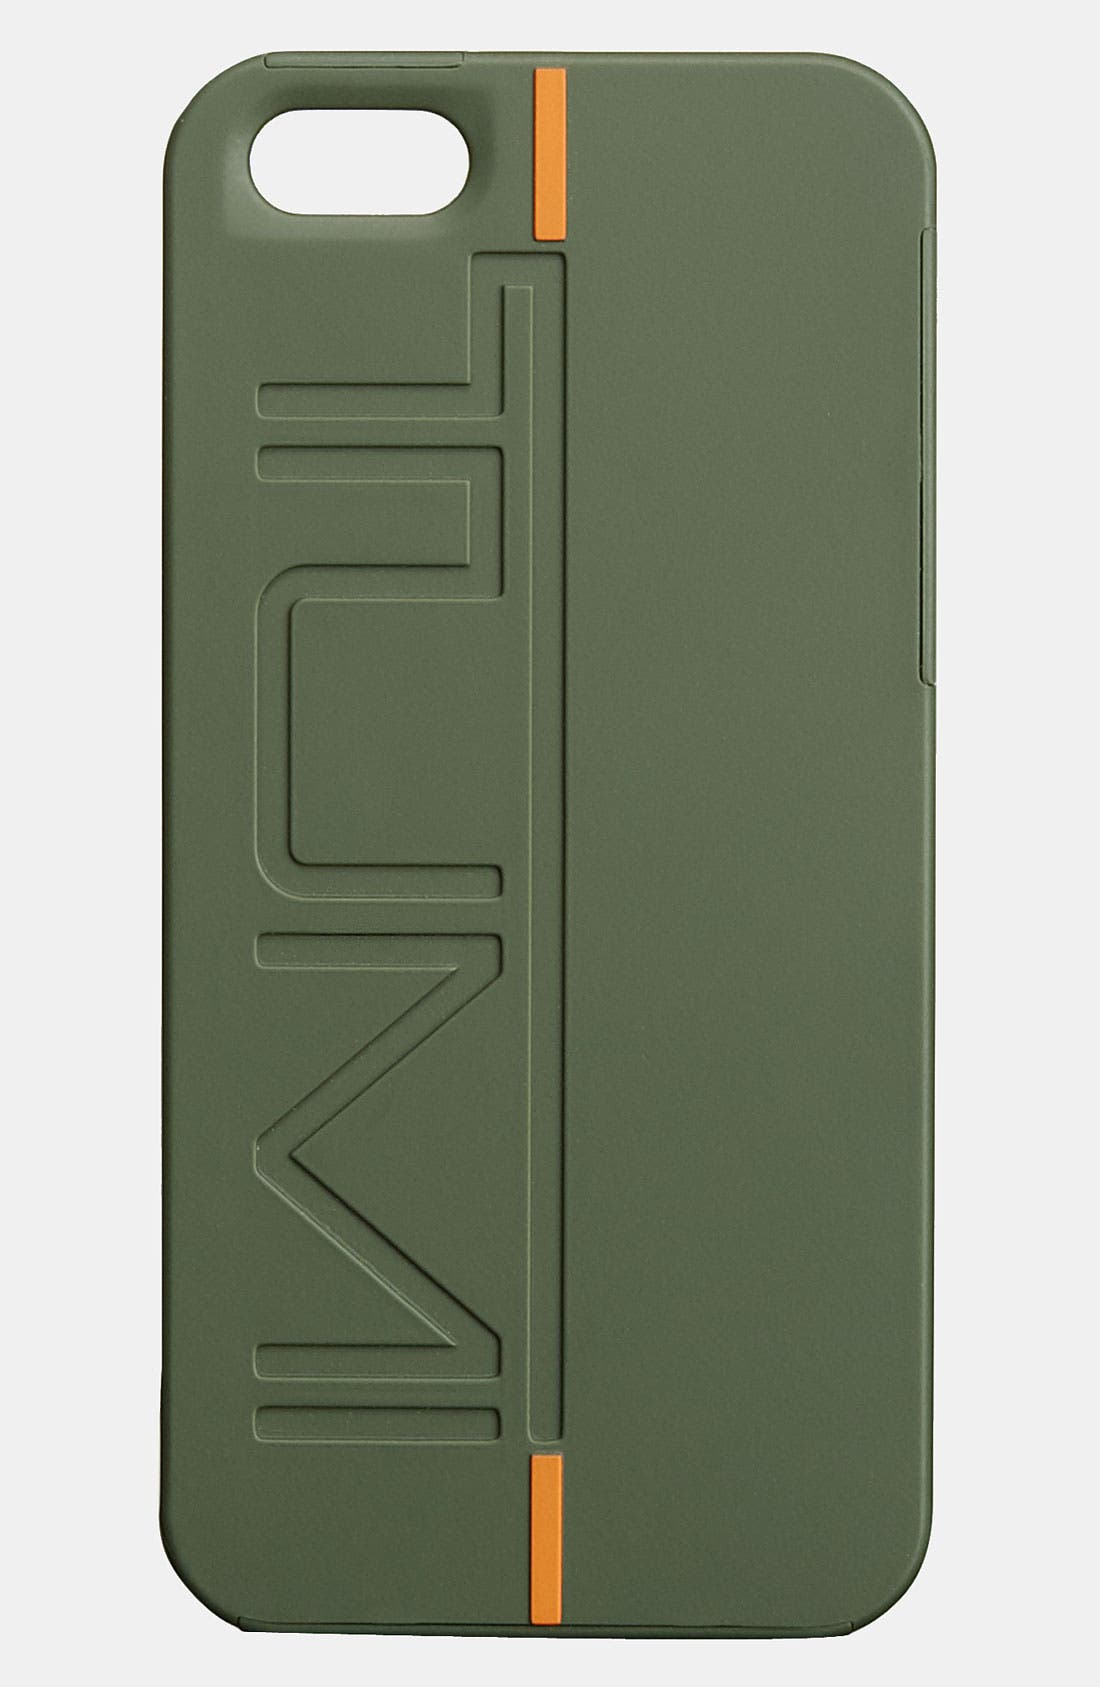 Main Image - Tumi iPhone 5 Case